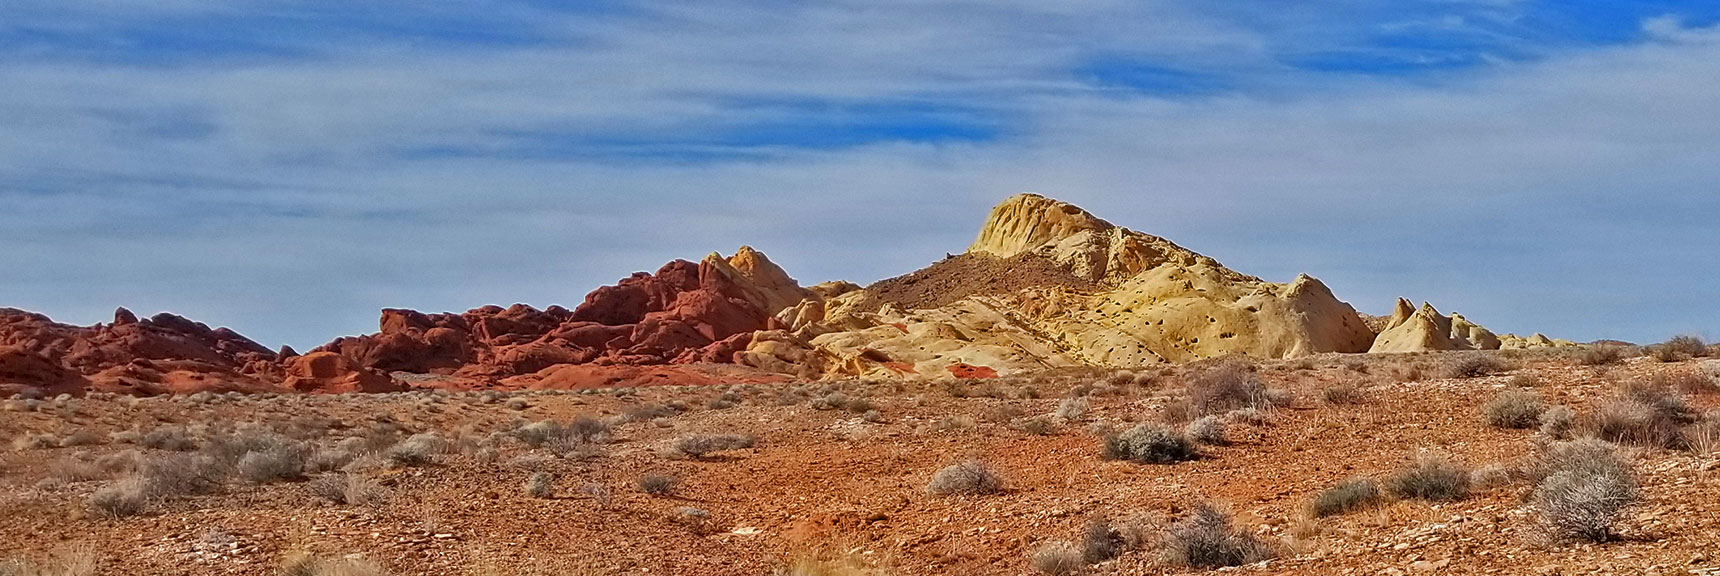 Approaching Fire Canyon Exit at Silica Dome in Valley of Fire State Park, Nevada